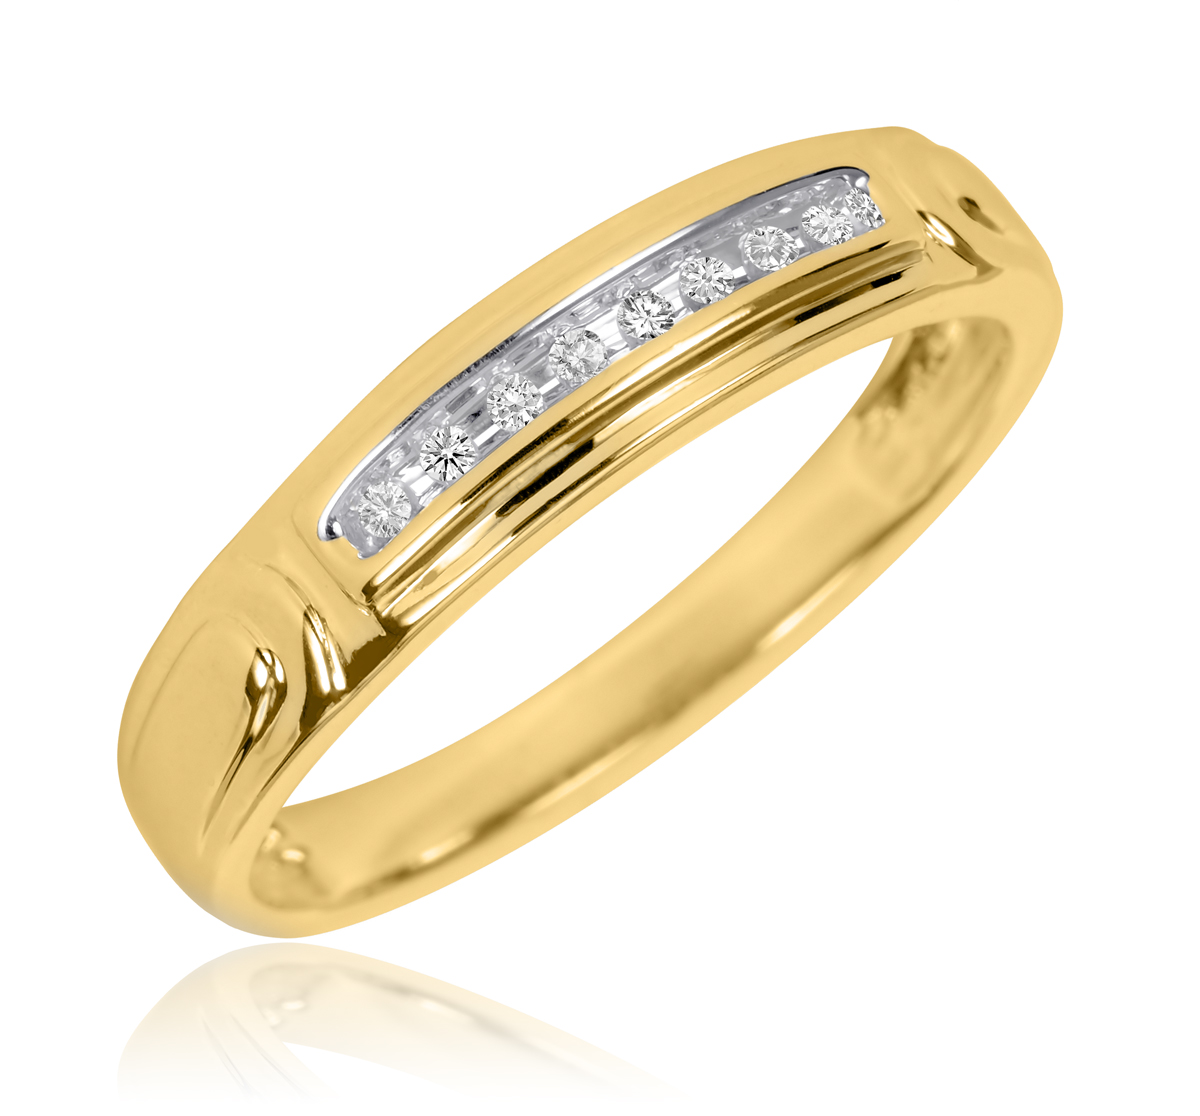 1/20 Carat T.W. Round Cut Diamond Men's Wedding Band 14K Yellow Gold- Size 8